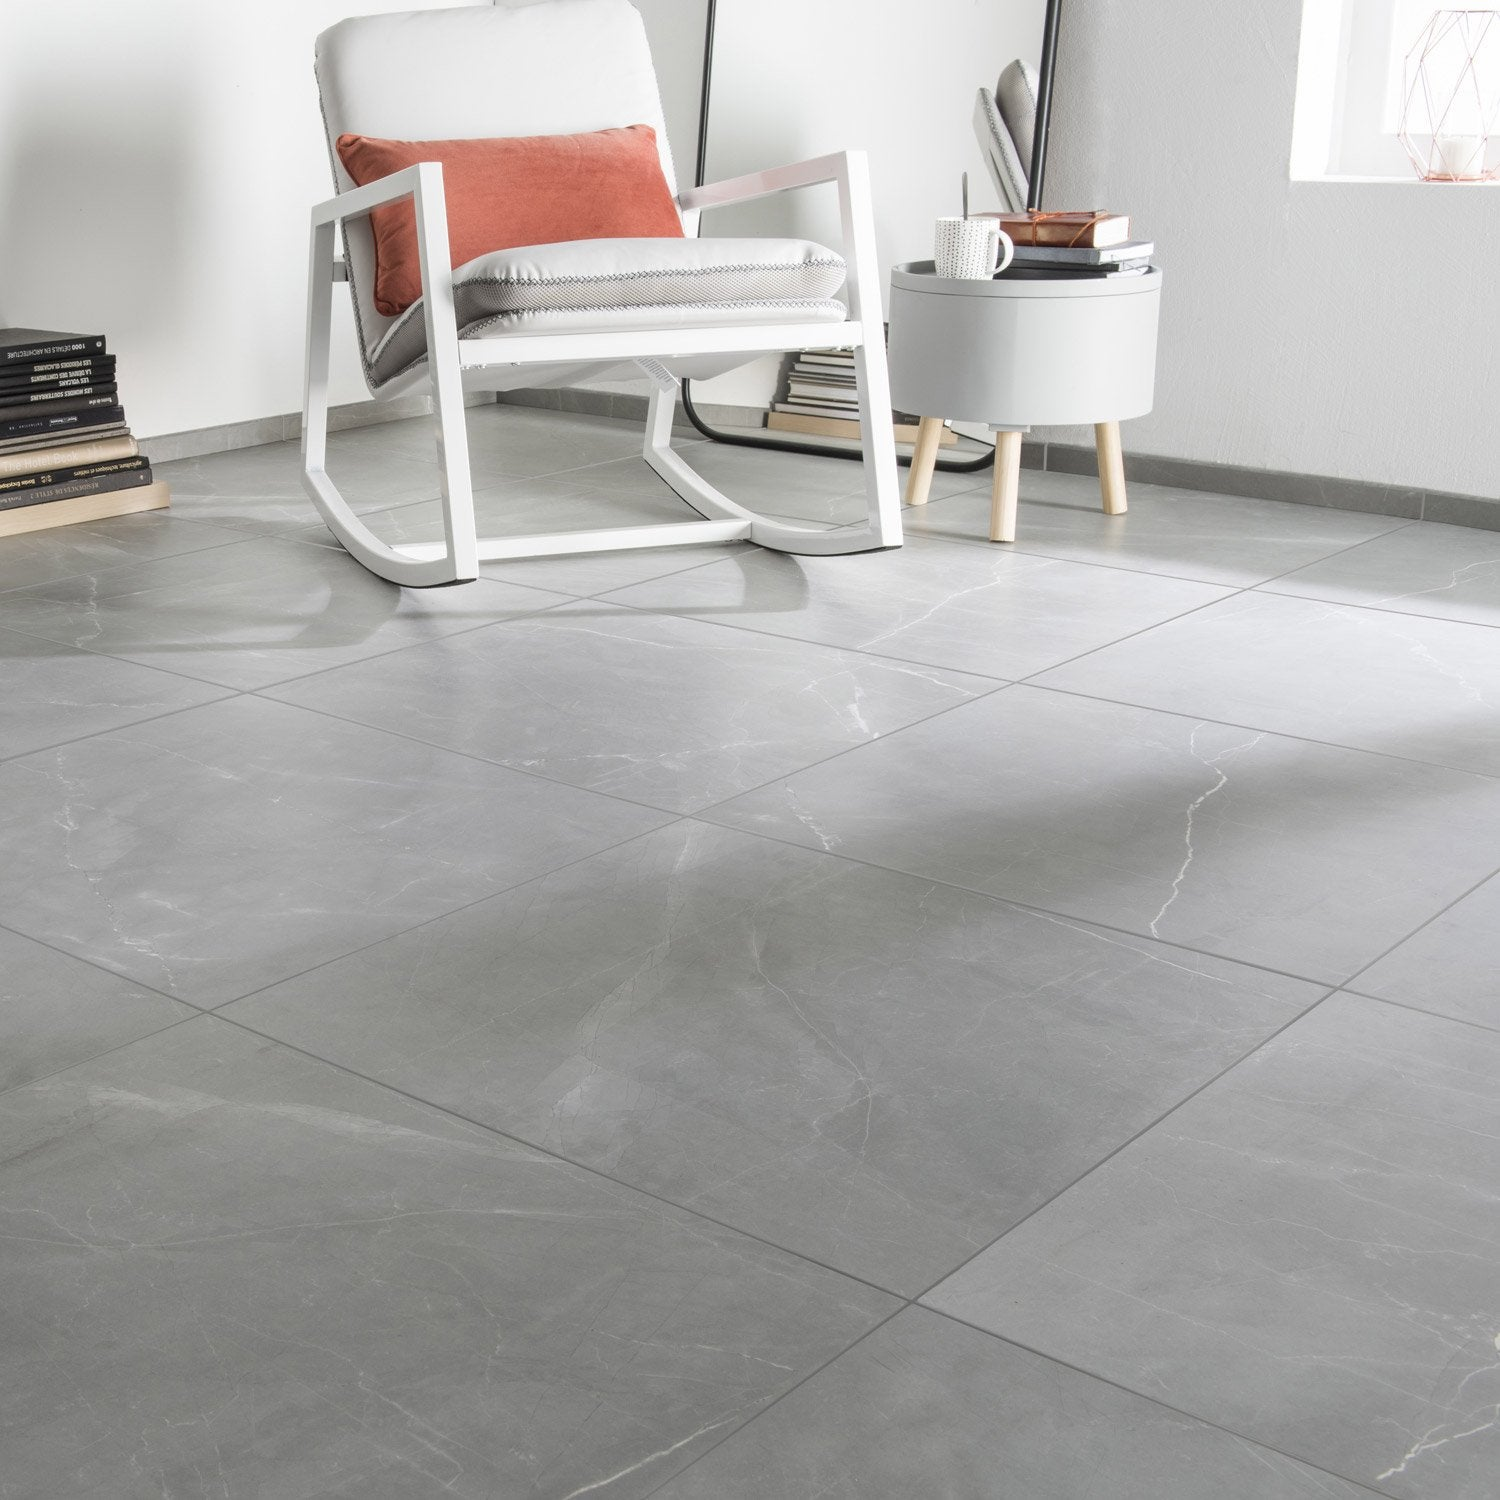 Carrelage et gris 28 images entr 233 e buanderie wc for Sdb carrelage